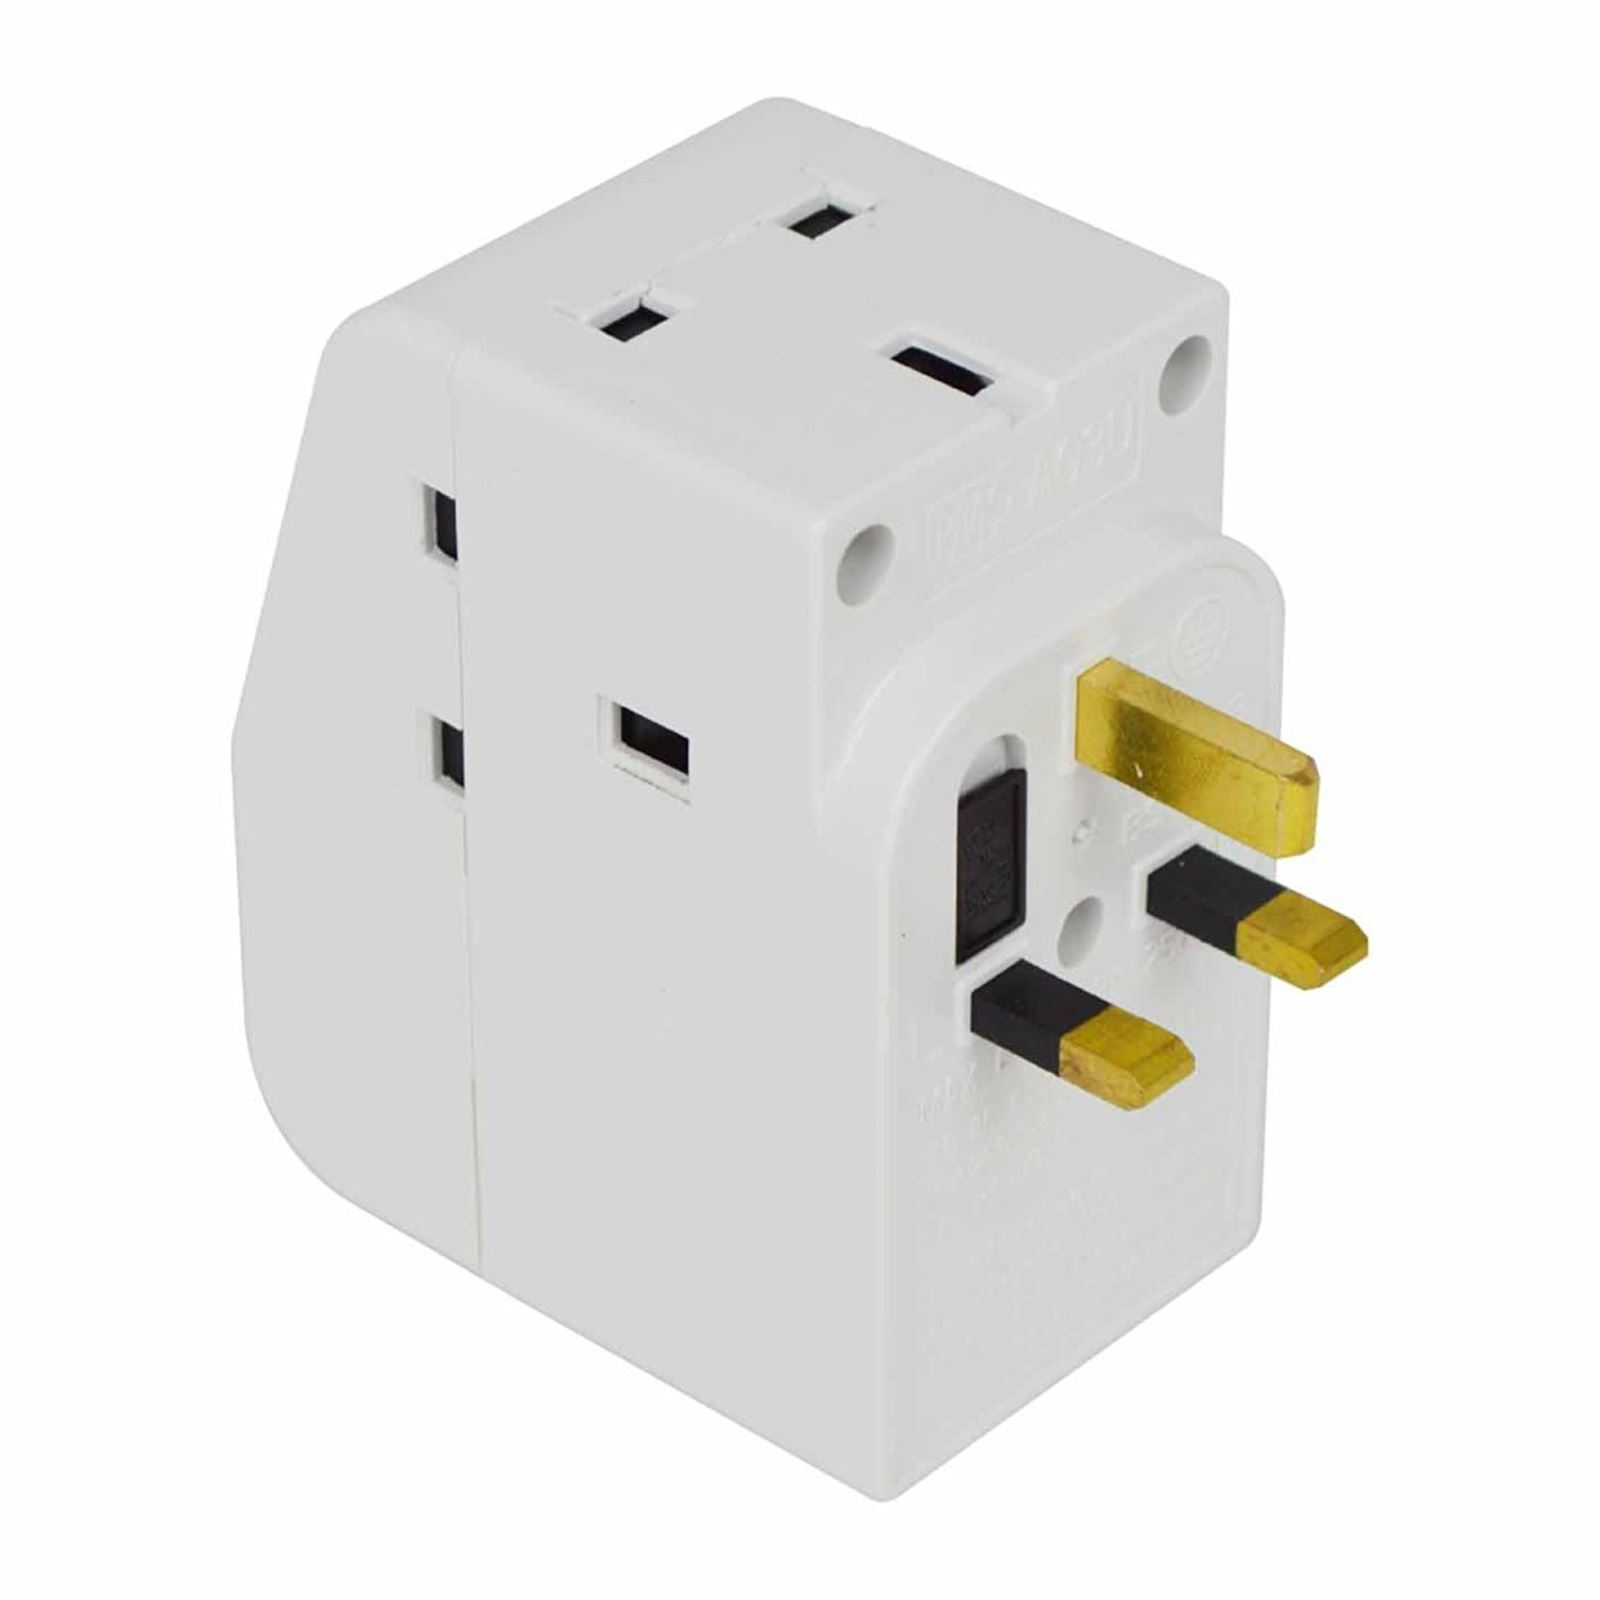 Multi Plug Extension Lead 2 3 4 5 Gang Way Uk Mains Socket Cable Wiring Wall